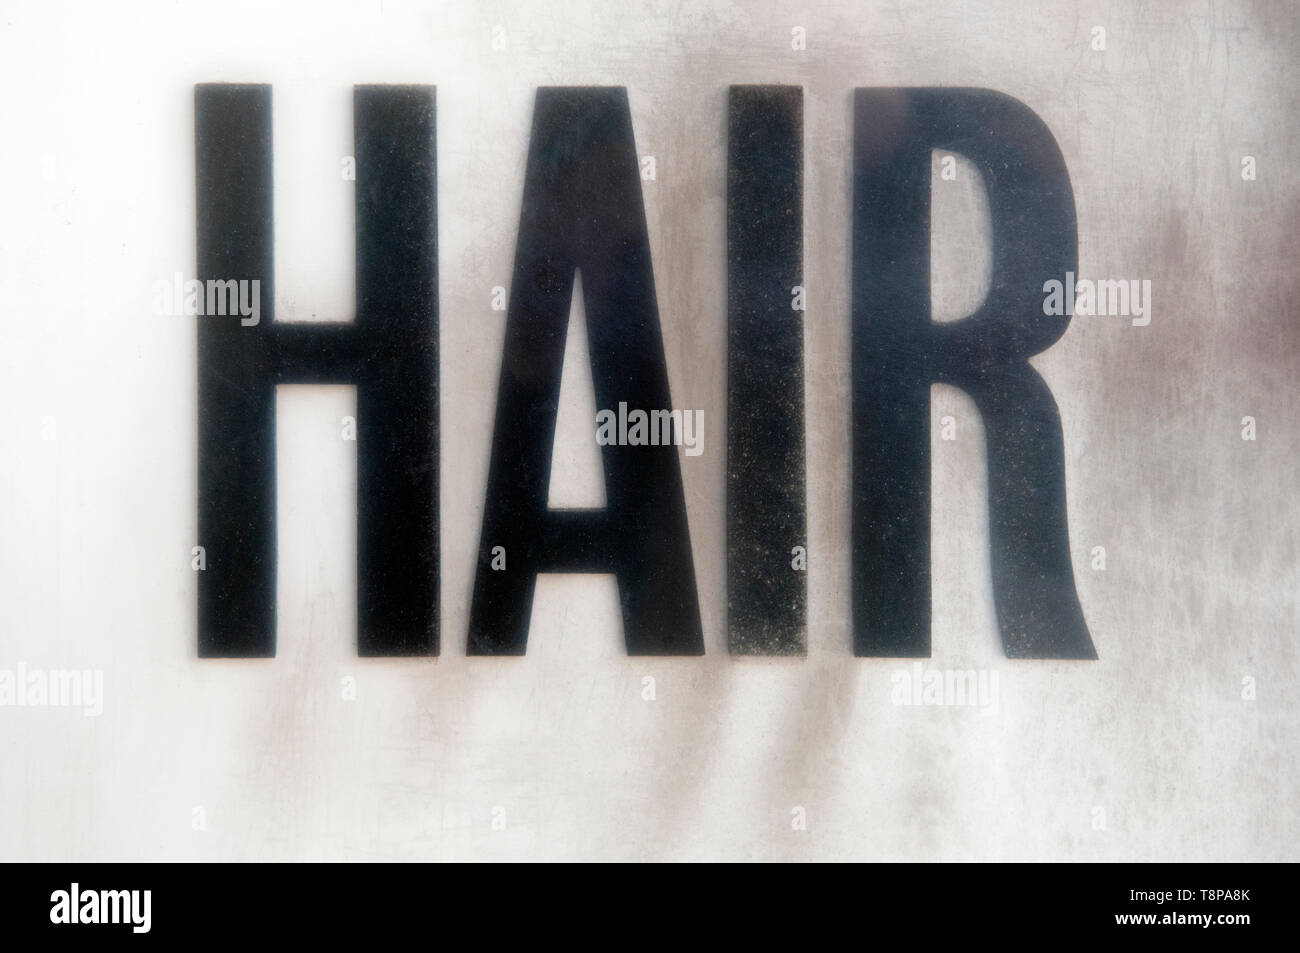 The Word Hair In Bold Black Lettering On A Grubby Frosted Background - Stock Image